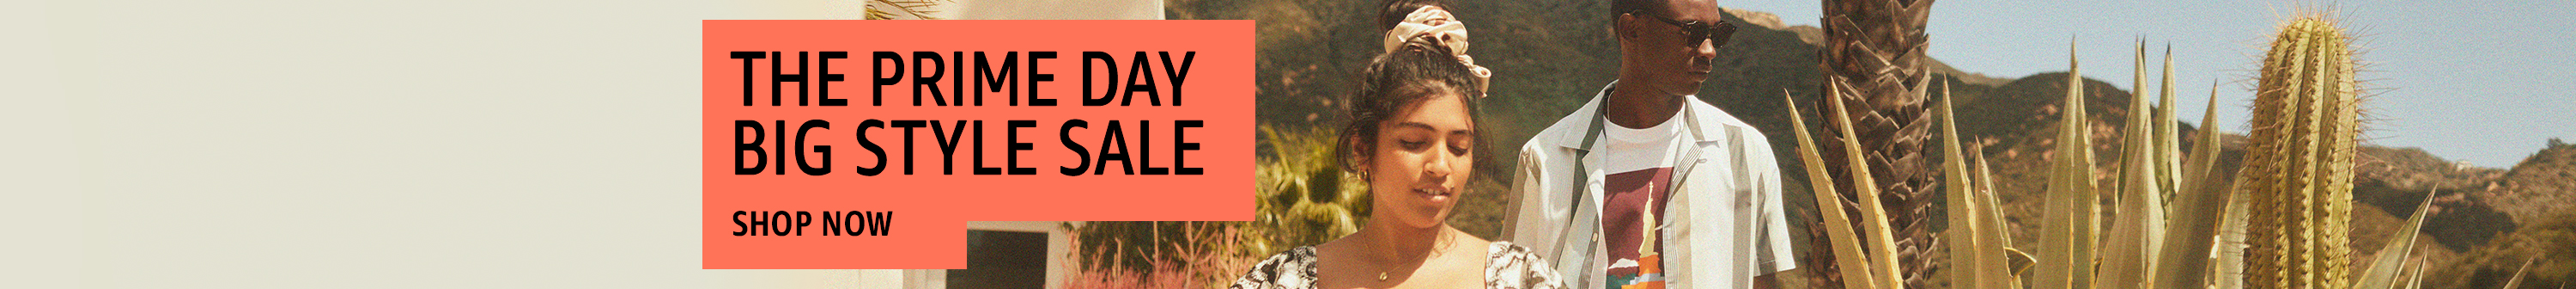 The Prime Day Big Style Sale